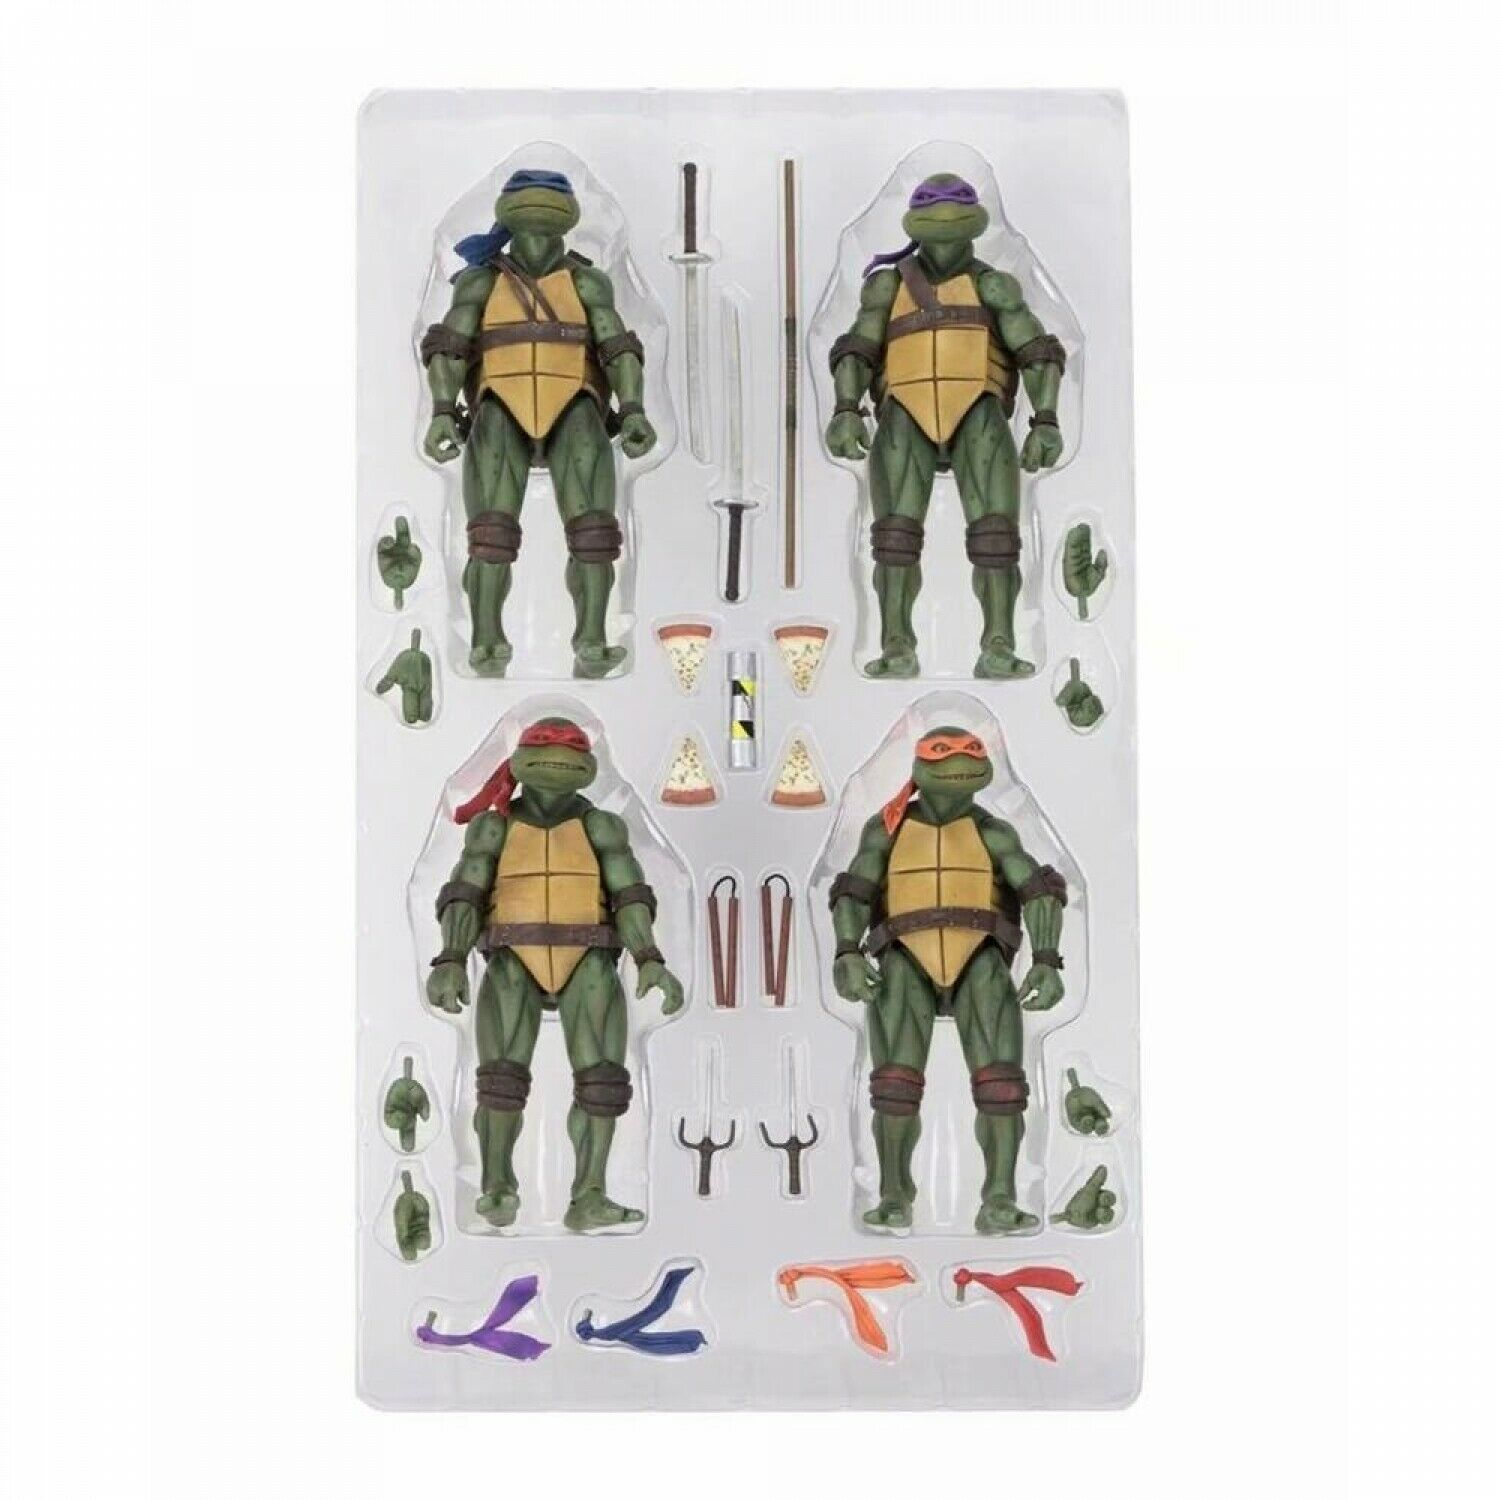 2019 New 4Pcs Set Original 1990's Turtles 18cm Action Figure Toys Doll For Kid